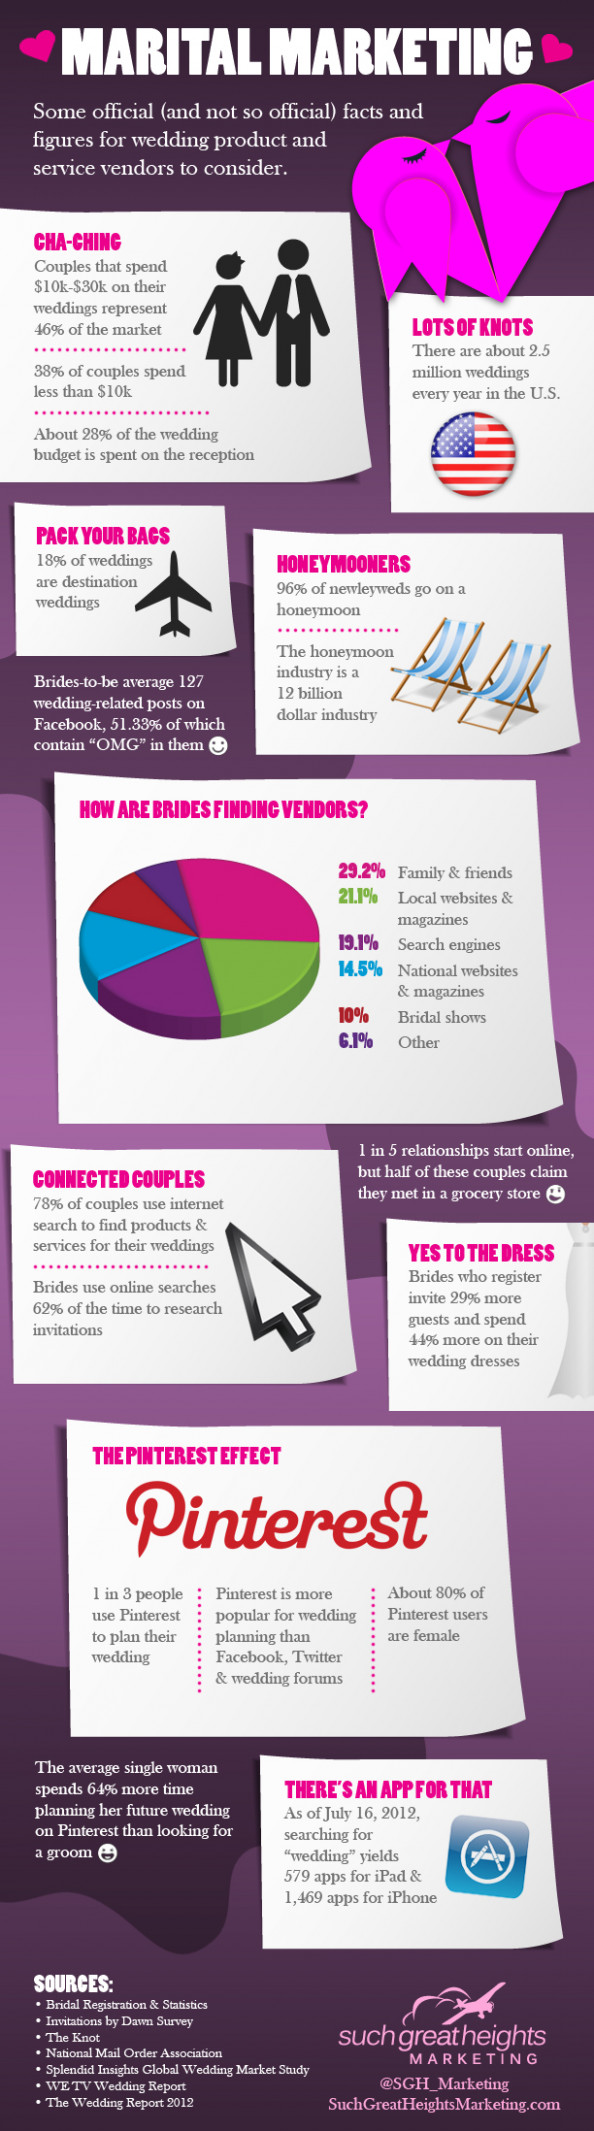 Marital Marketing Infographic